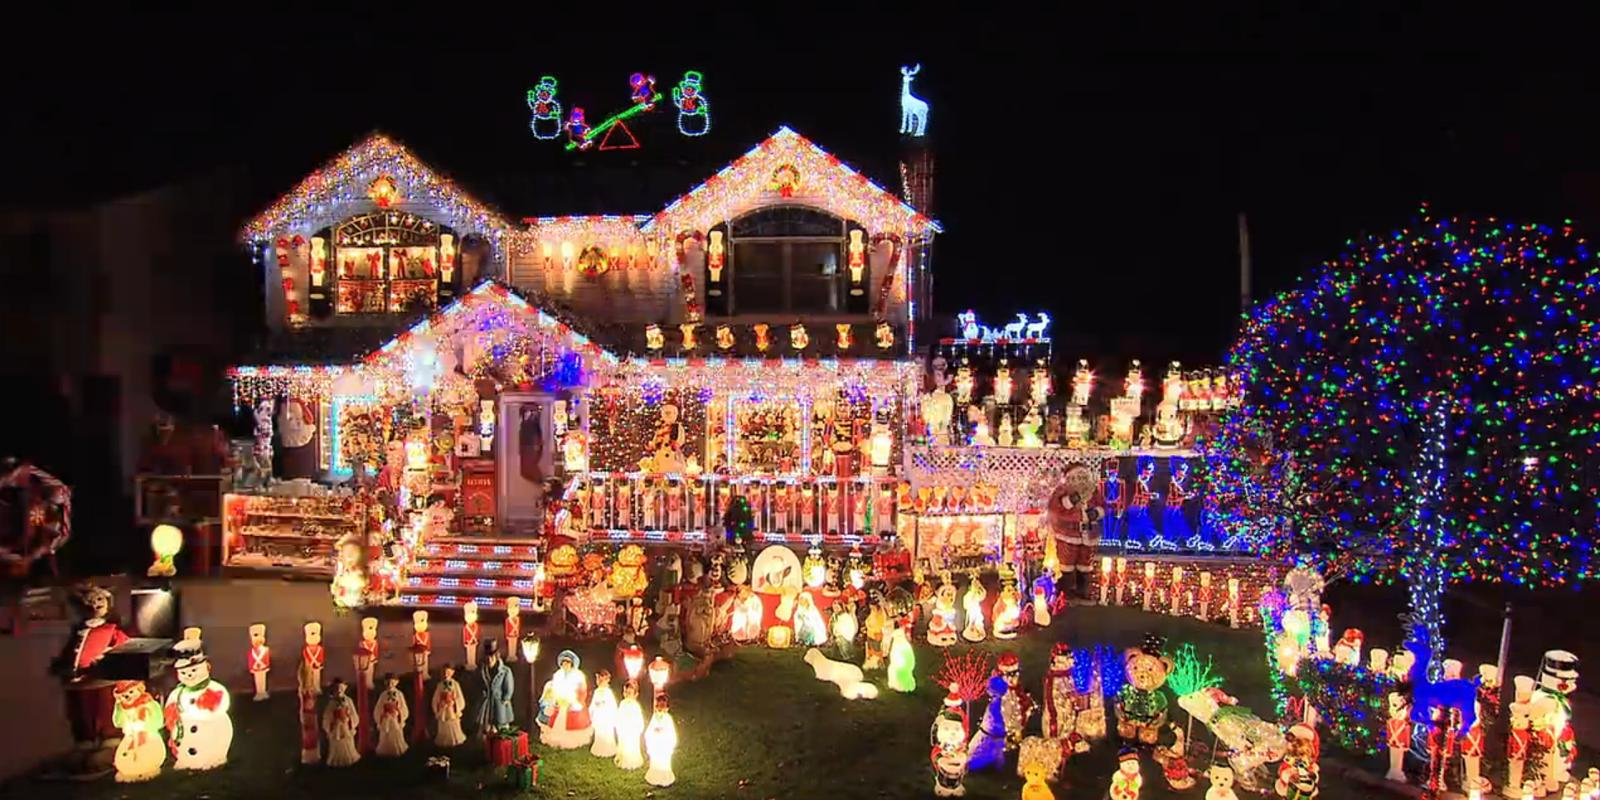 Great Christmas Gifts For Boyfriend: The Great Christmas Light Fight To Air On TruTV In The UK